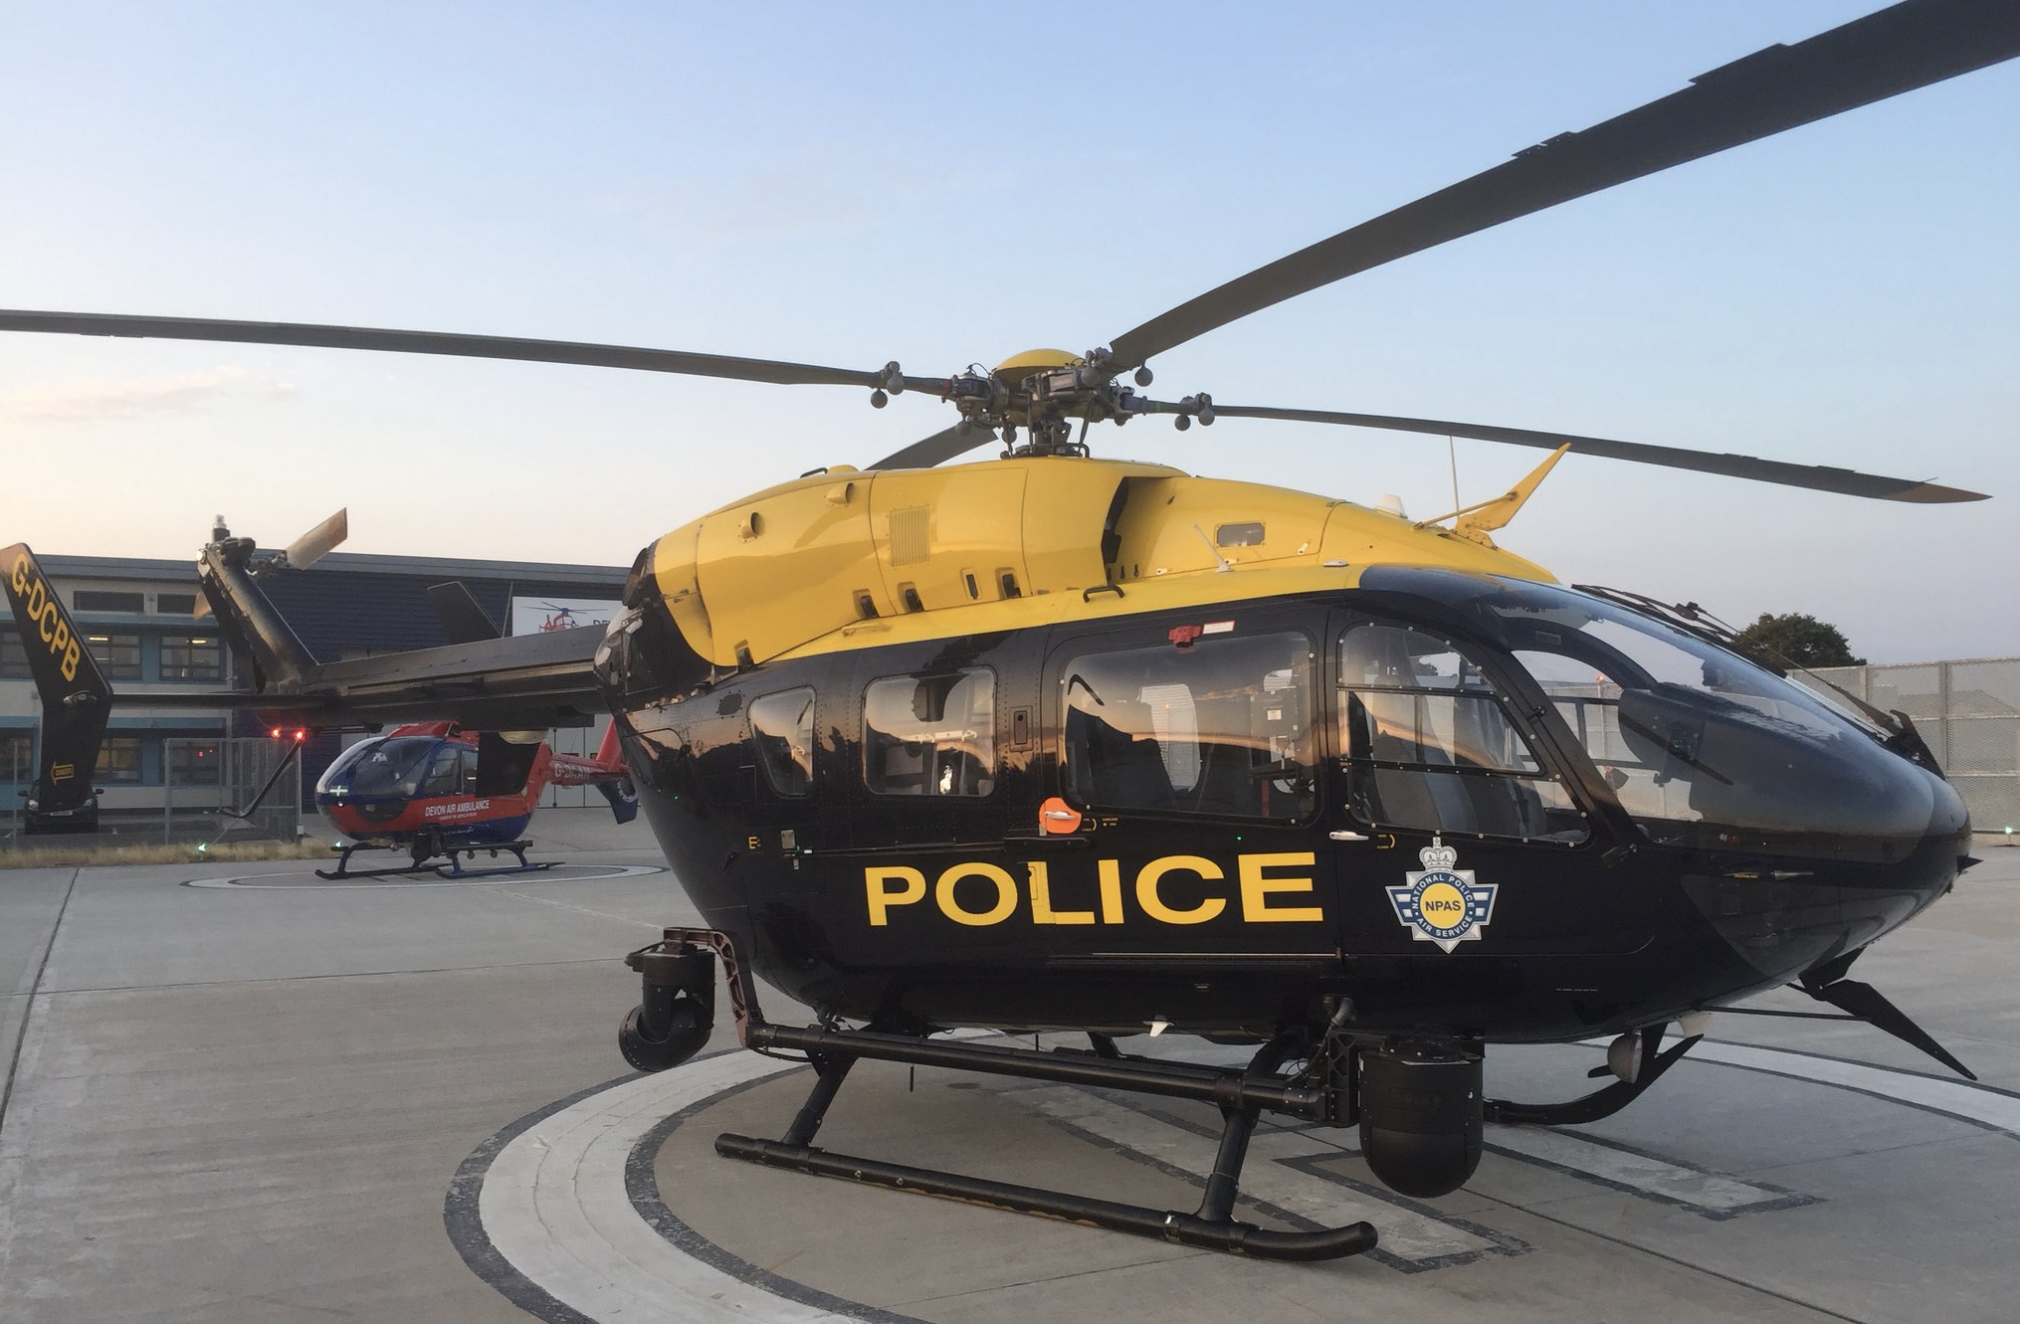 Image courtesy of Devon and Cornwall Police and the National Police Air Service (NPAS).